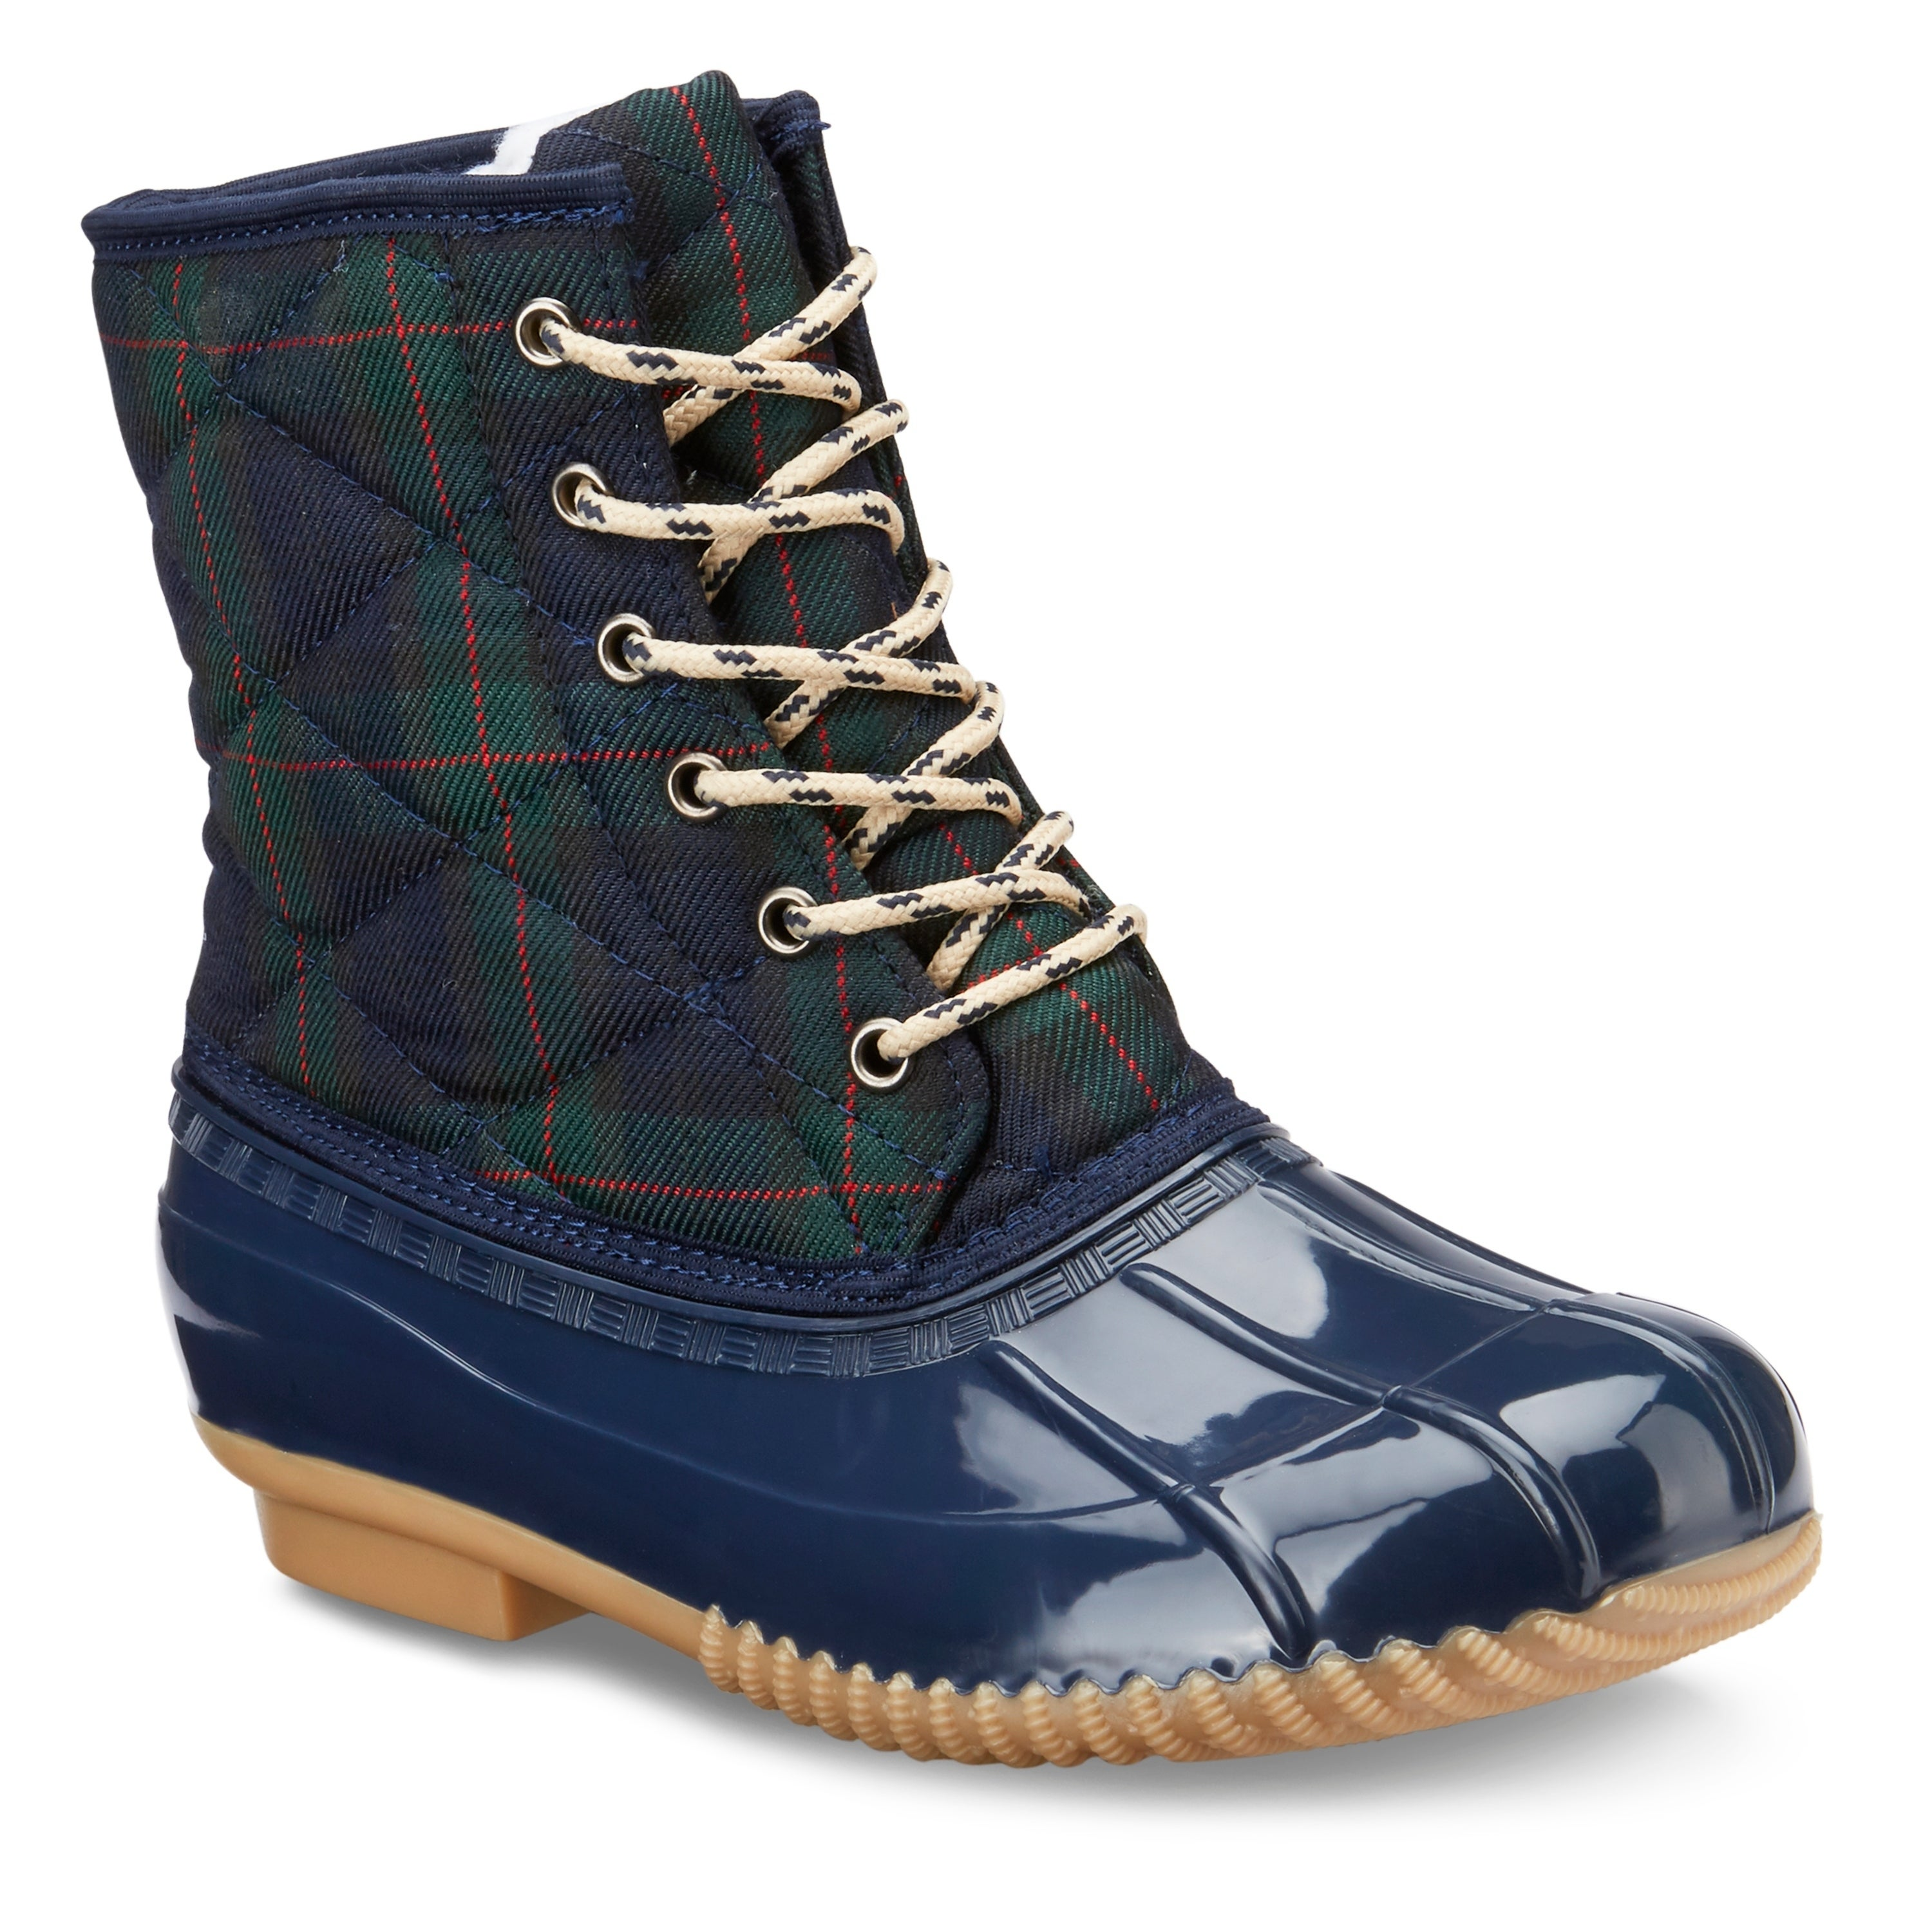 0d5c438dc1b Olivia Miller 'Wrangell' Quilted Duck Boots